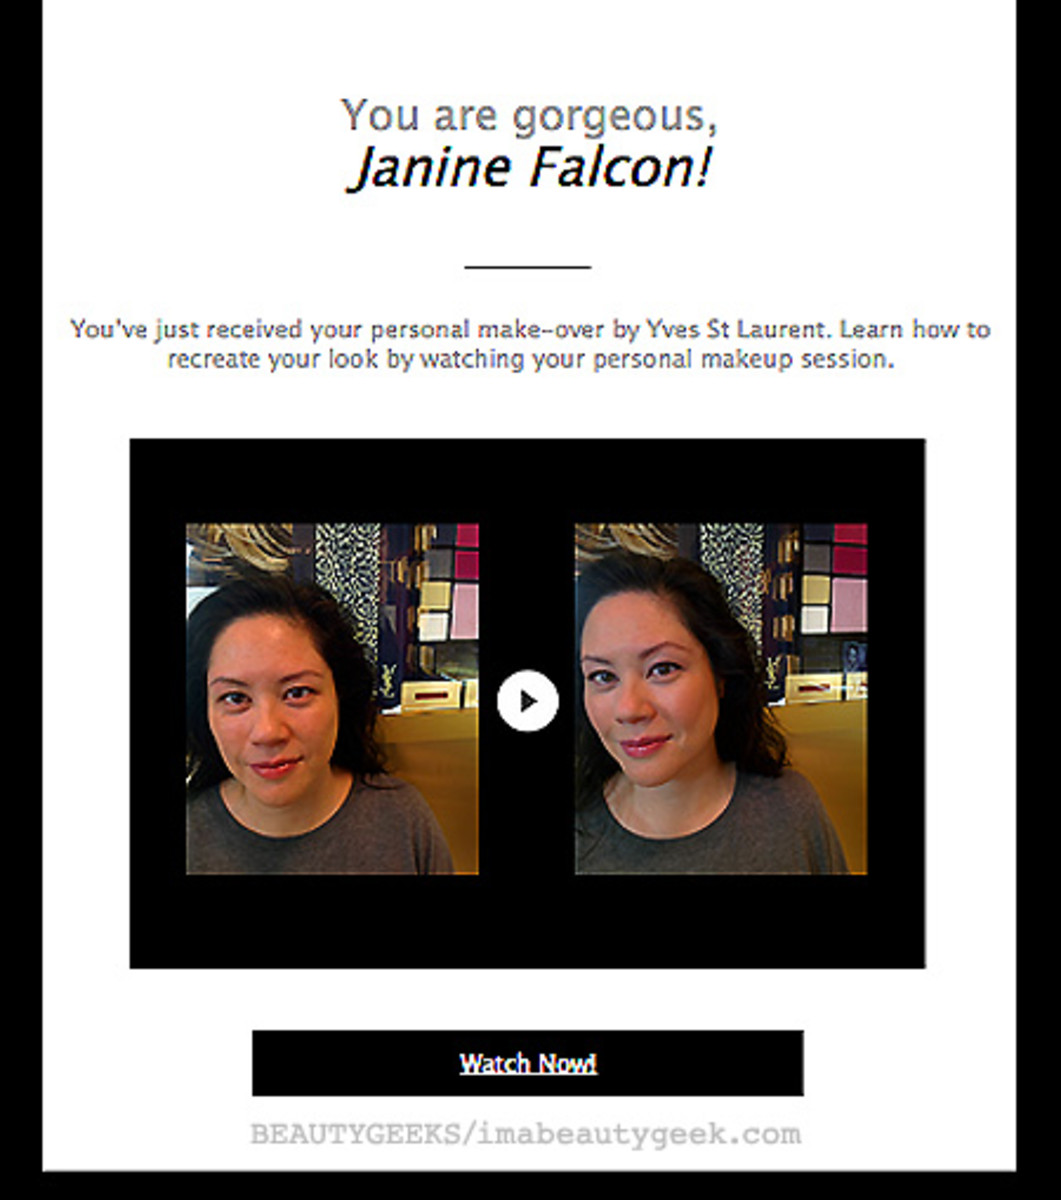 ysl google glass makeup how-to email